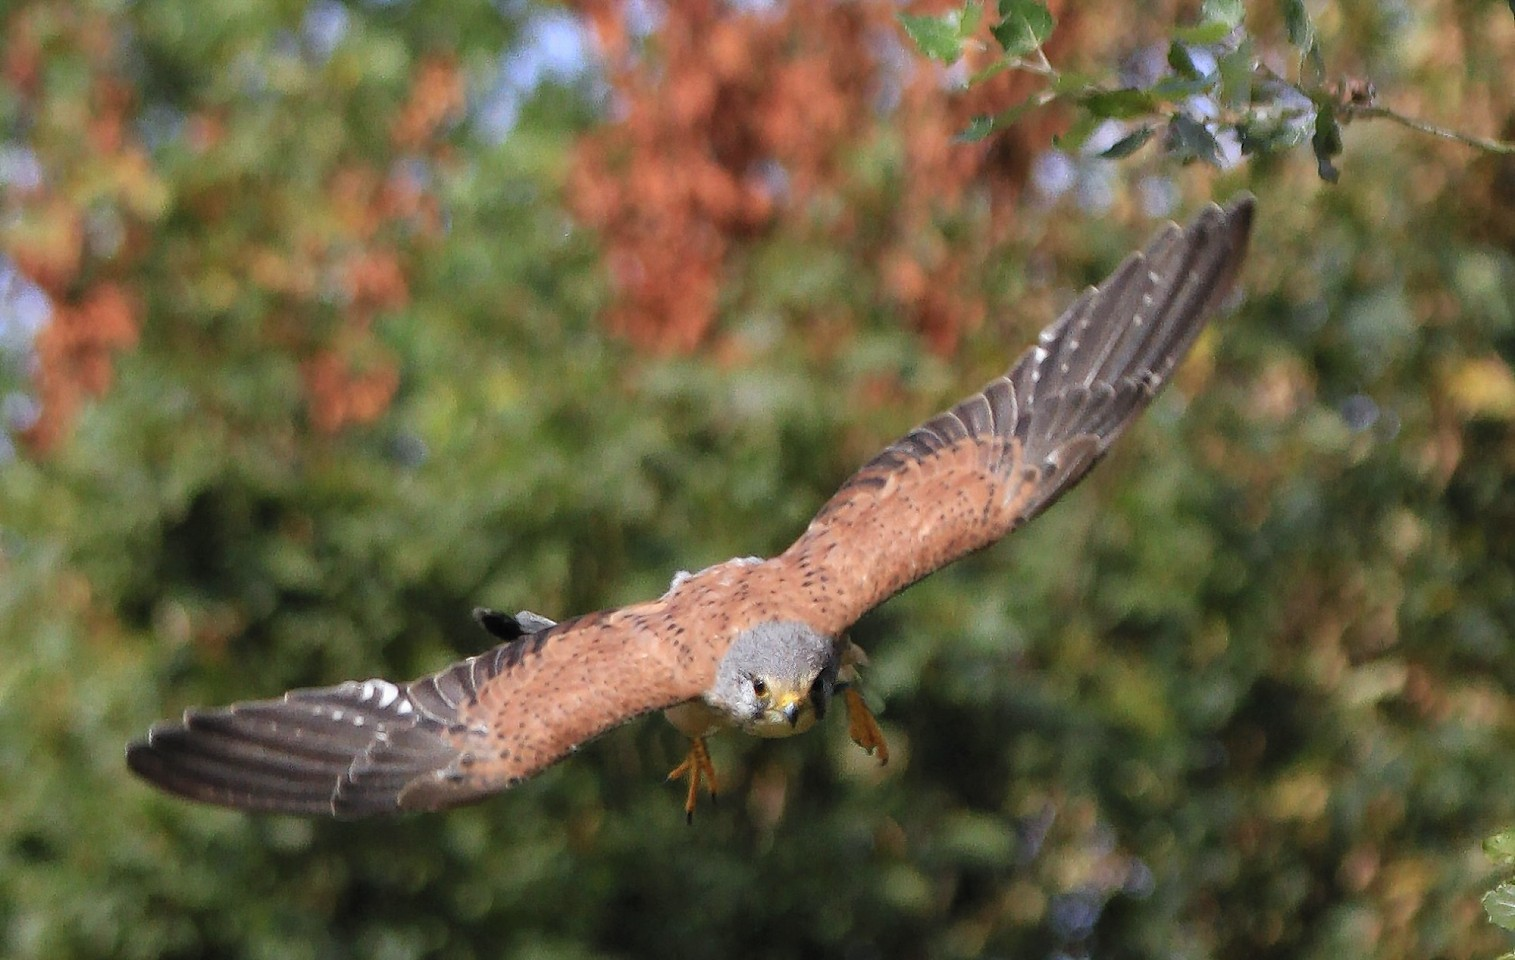 Kestrel numbers are on the decline